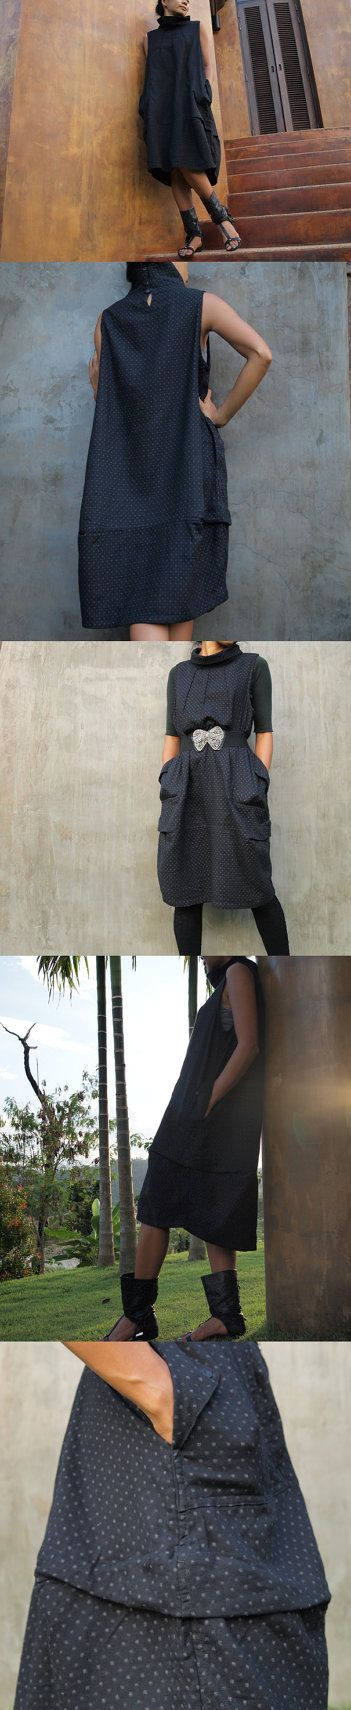 Turtle Neck Dress / Sleeveless Dress (1403) Brown Dot printed thick cotton (one size)